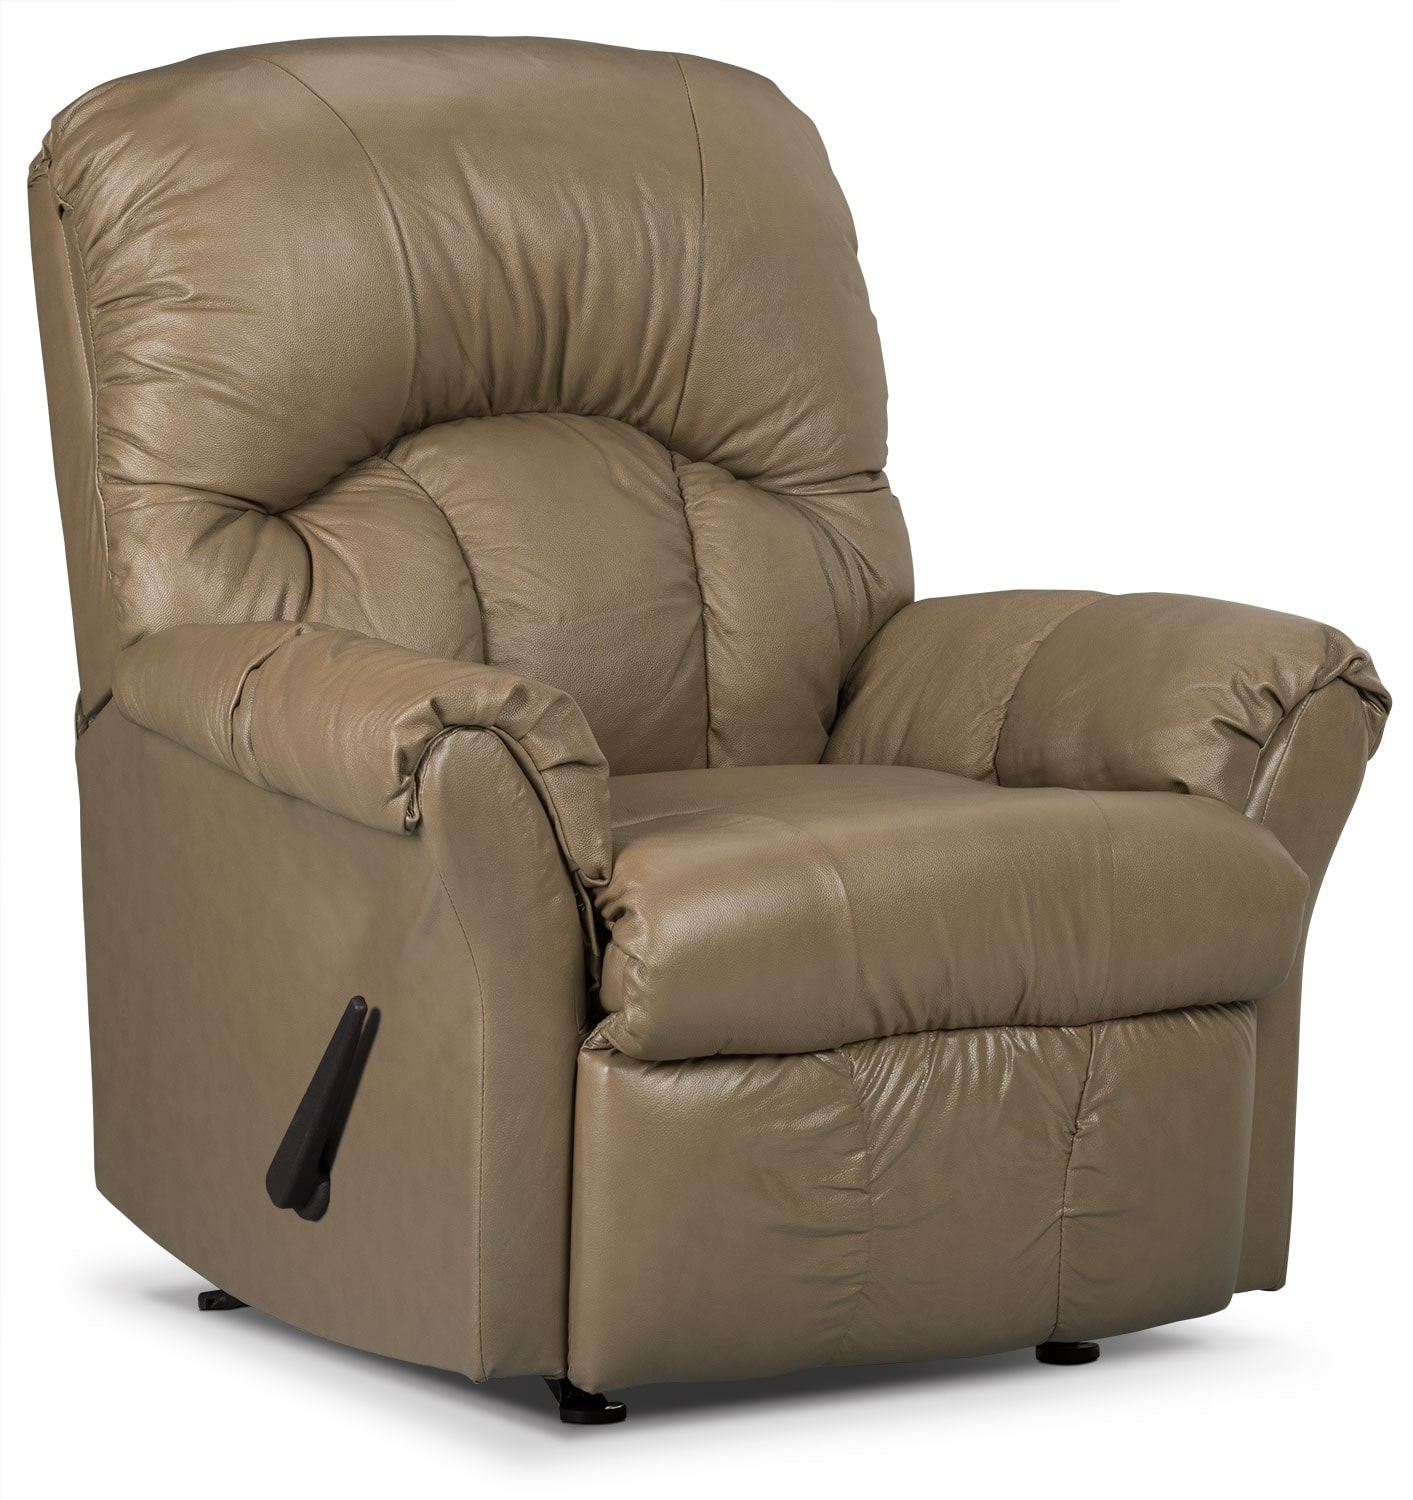 Living Room Furniture - Designed2B Recliner 6734 Genuine Leather Rocker Chair - Buff